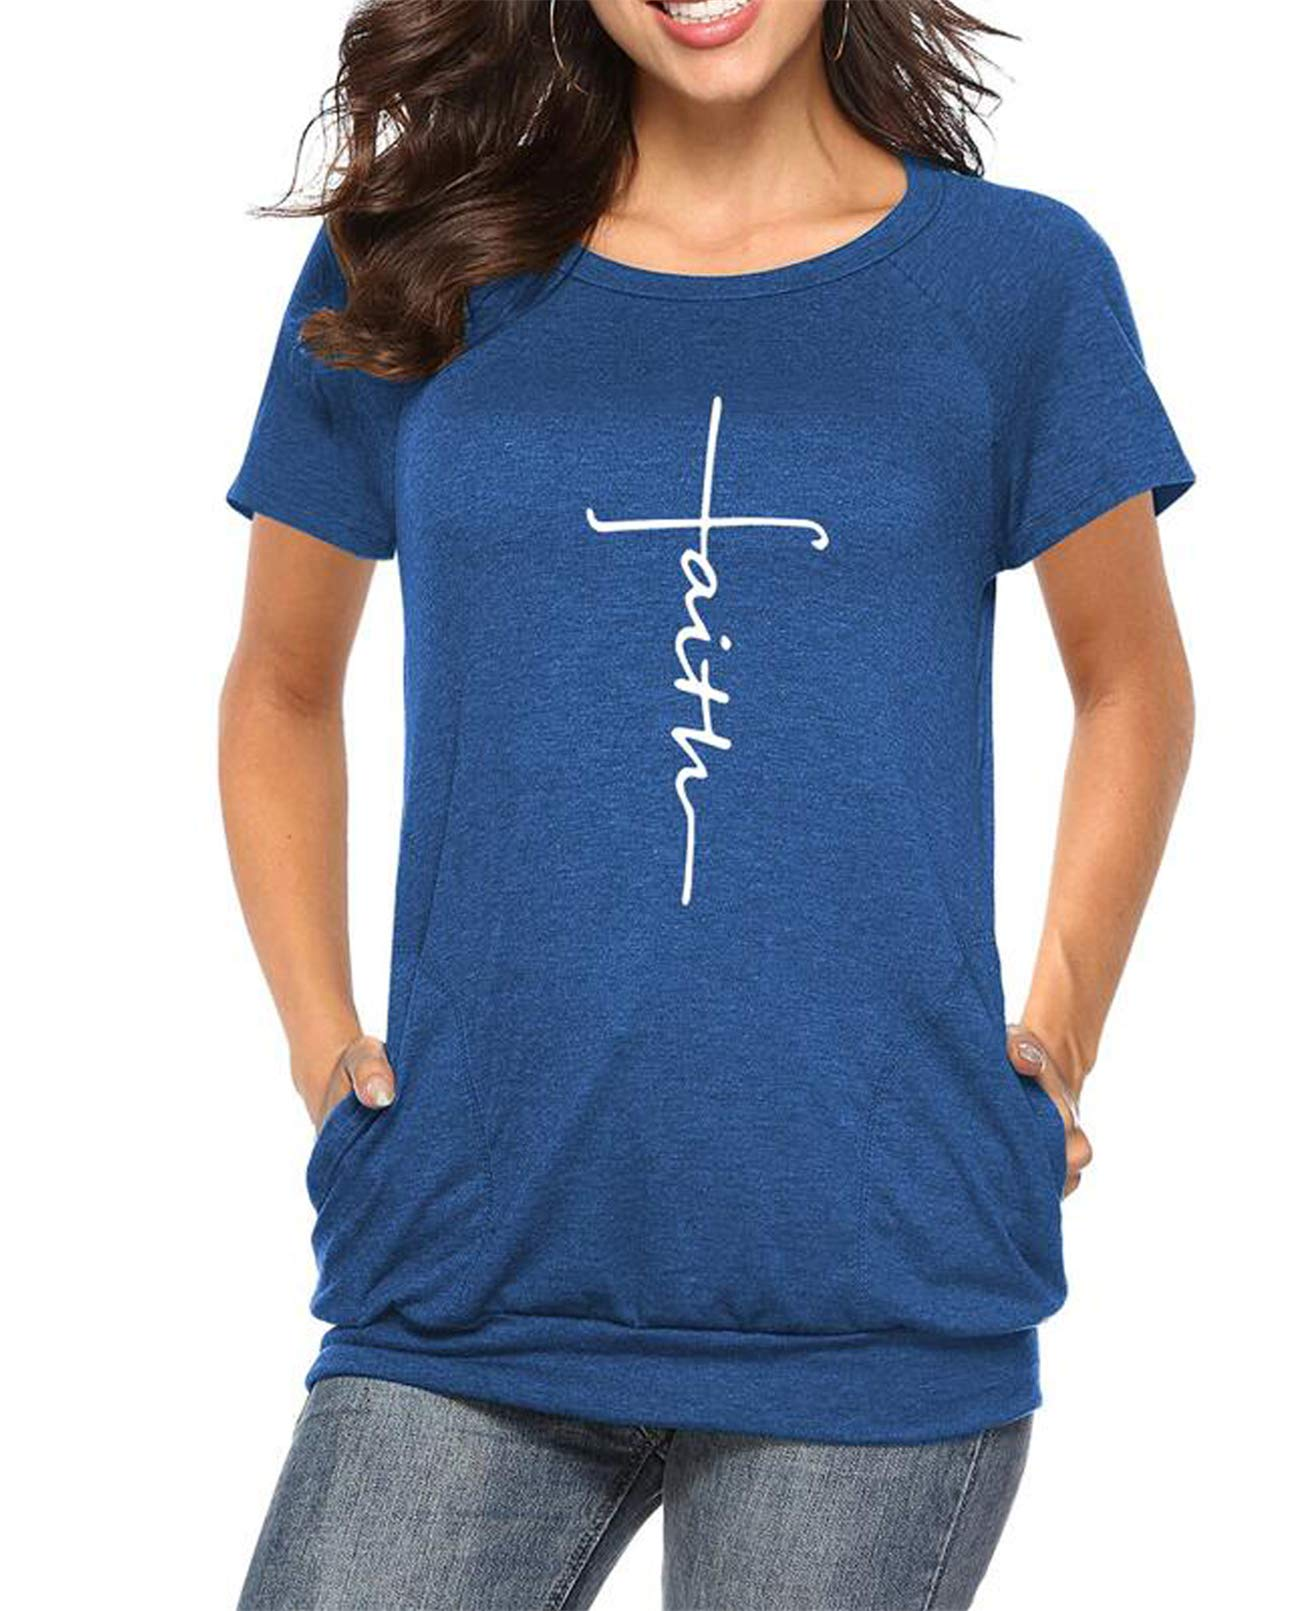 Mansy Womens Summer Casual Faith Tshirts Letter Printed Short Sleeve and Long Sleeve Graphic Tees Tops Sweatshirt Pockets